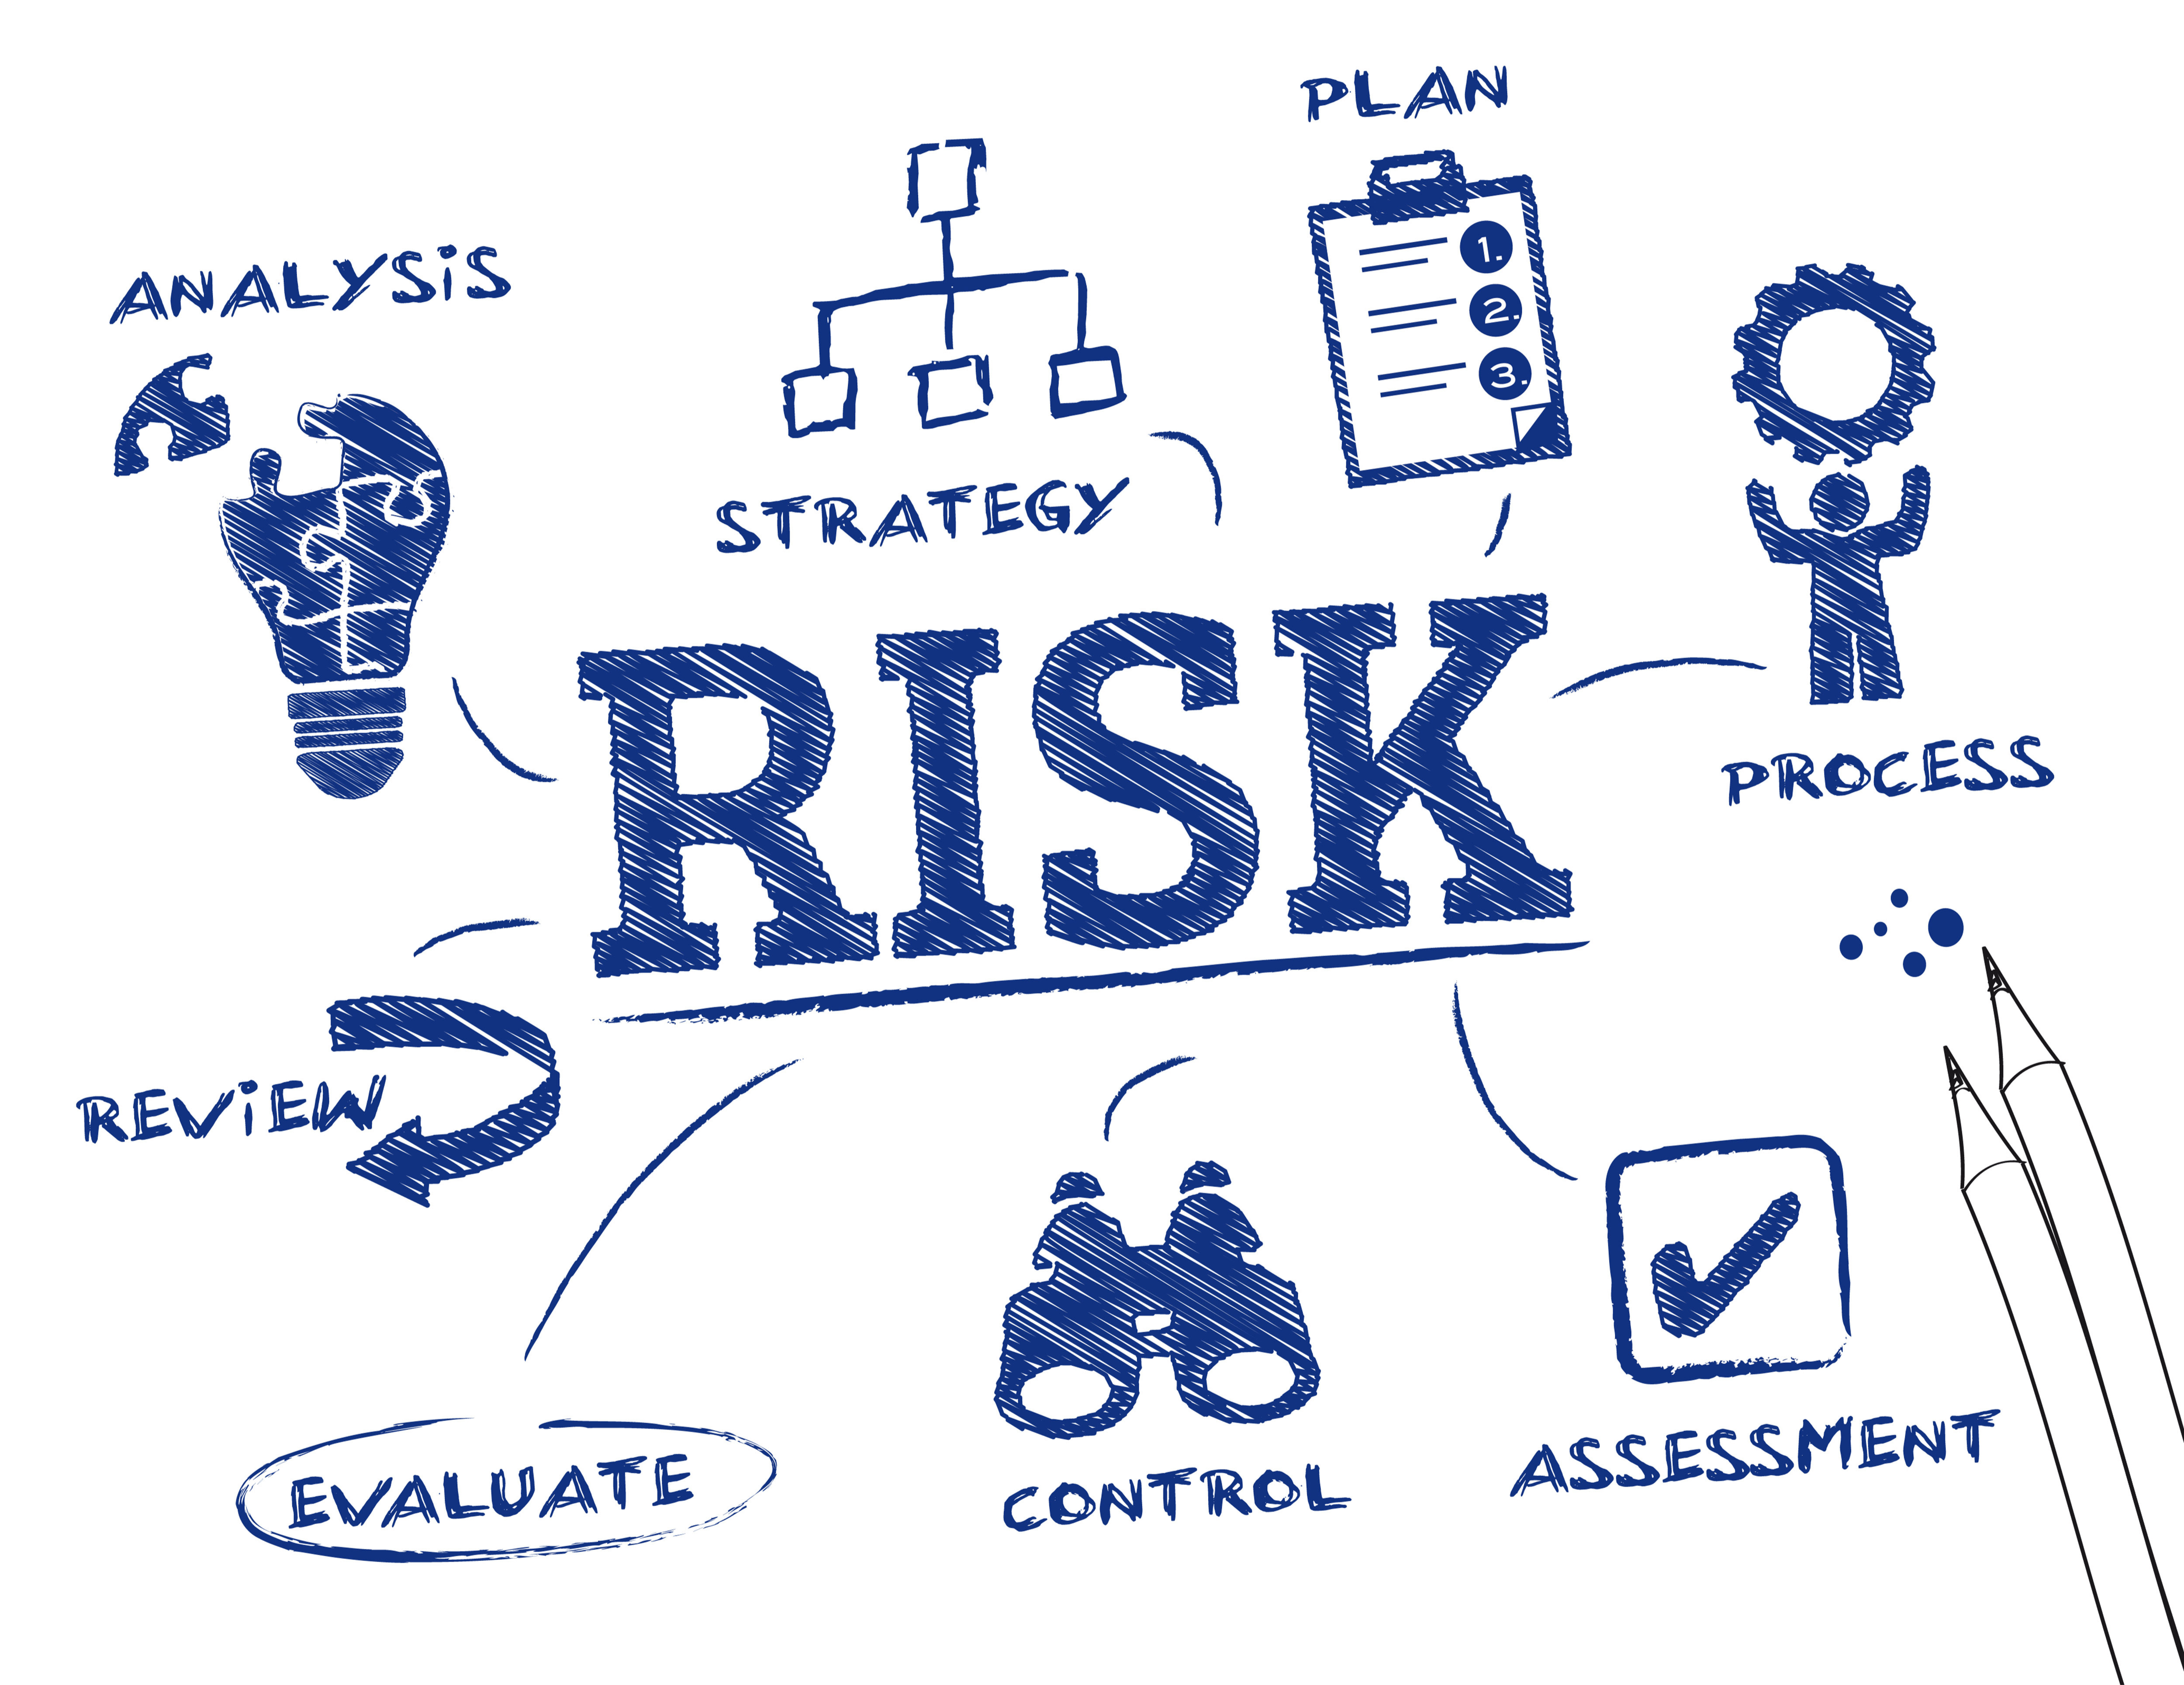 Assessing Risk with the Power of AI and the Insight of Human Expertise